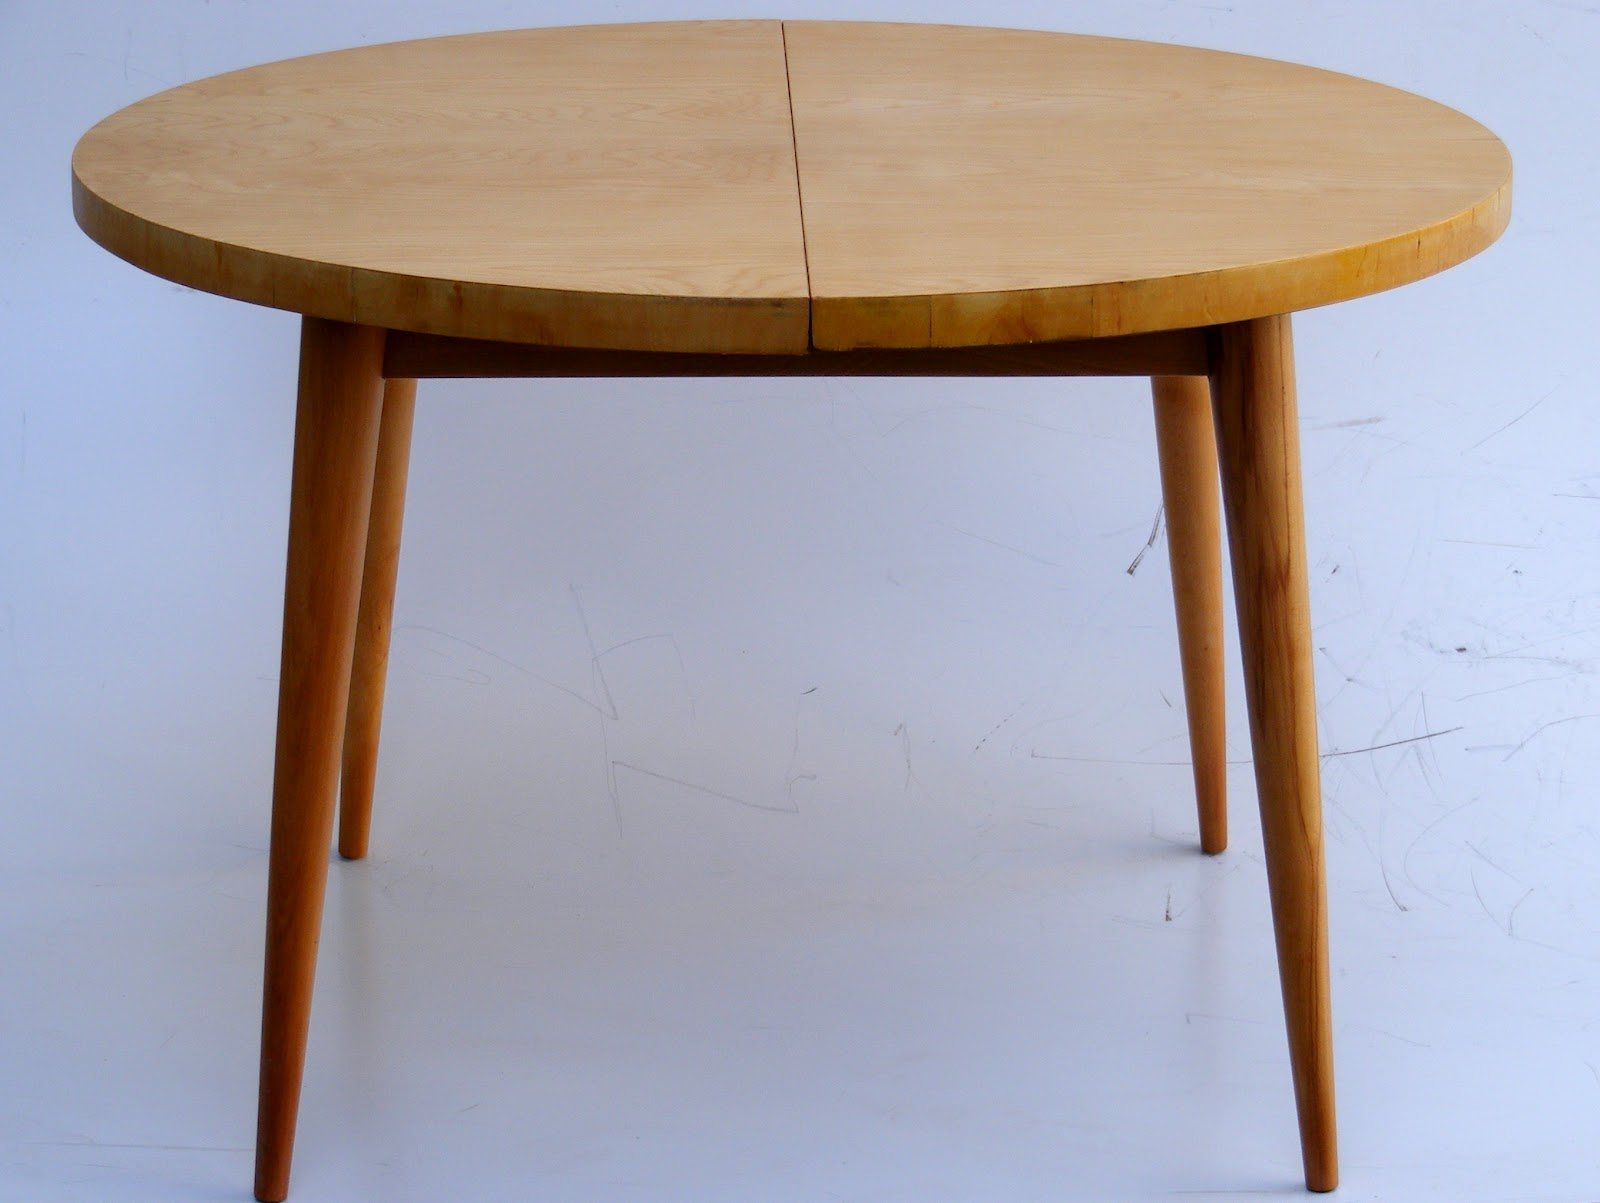 maple extendable dining table extended 152cm x 114cm h 74cm